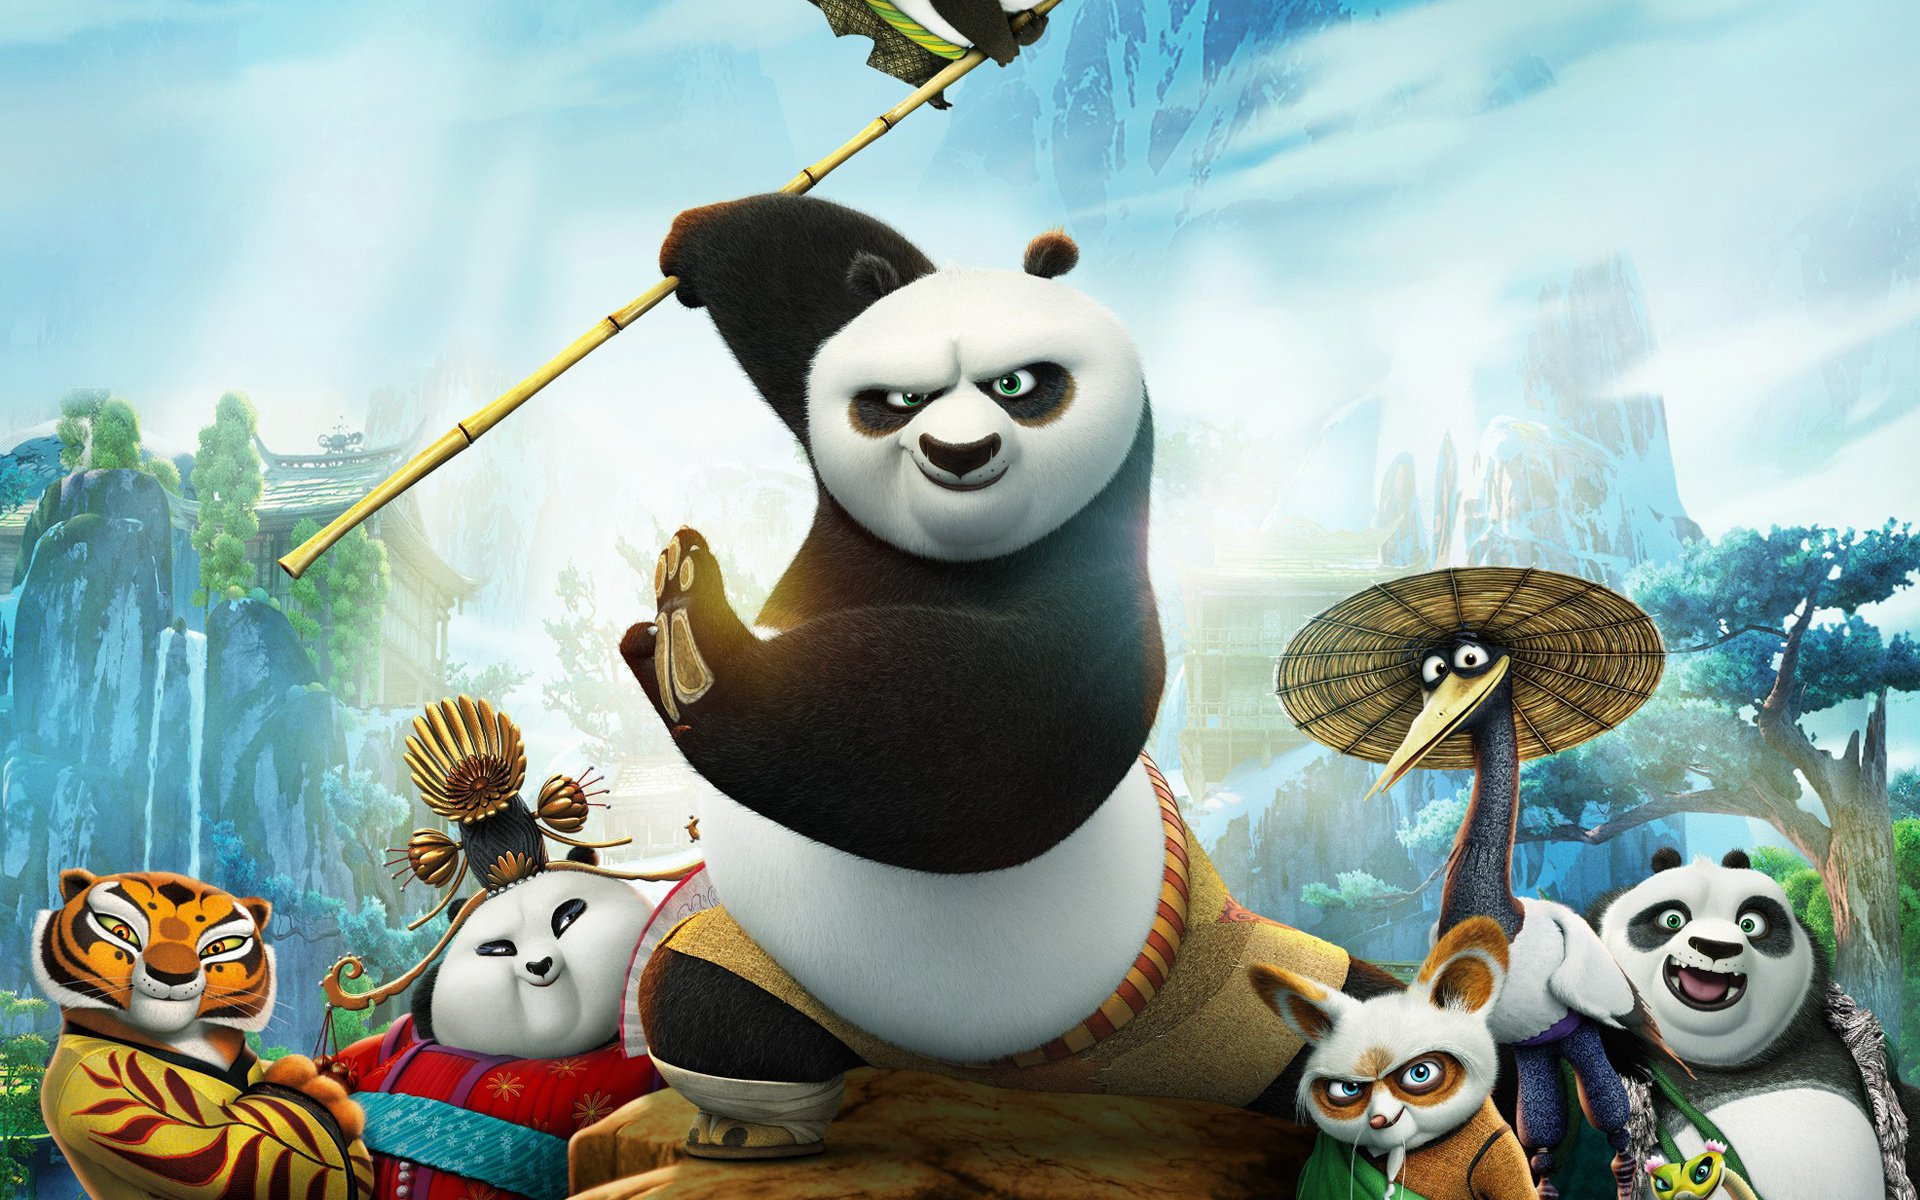 kung fu panda 3 full hd wallpaper and background image | 1920x1200